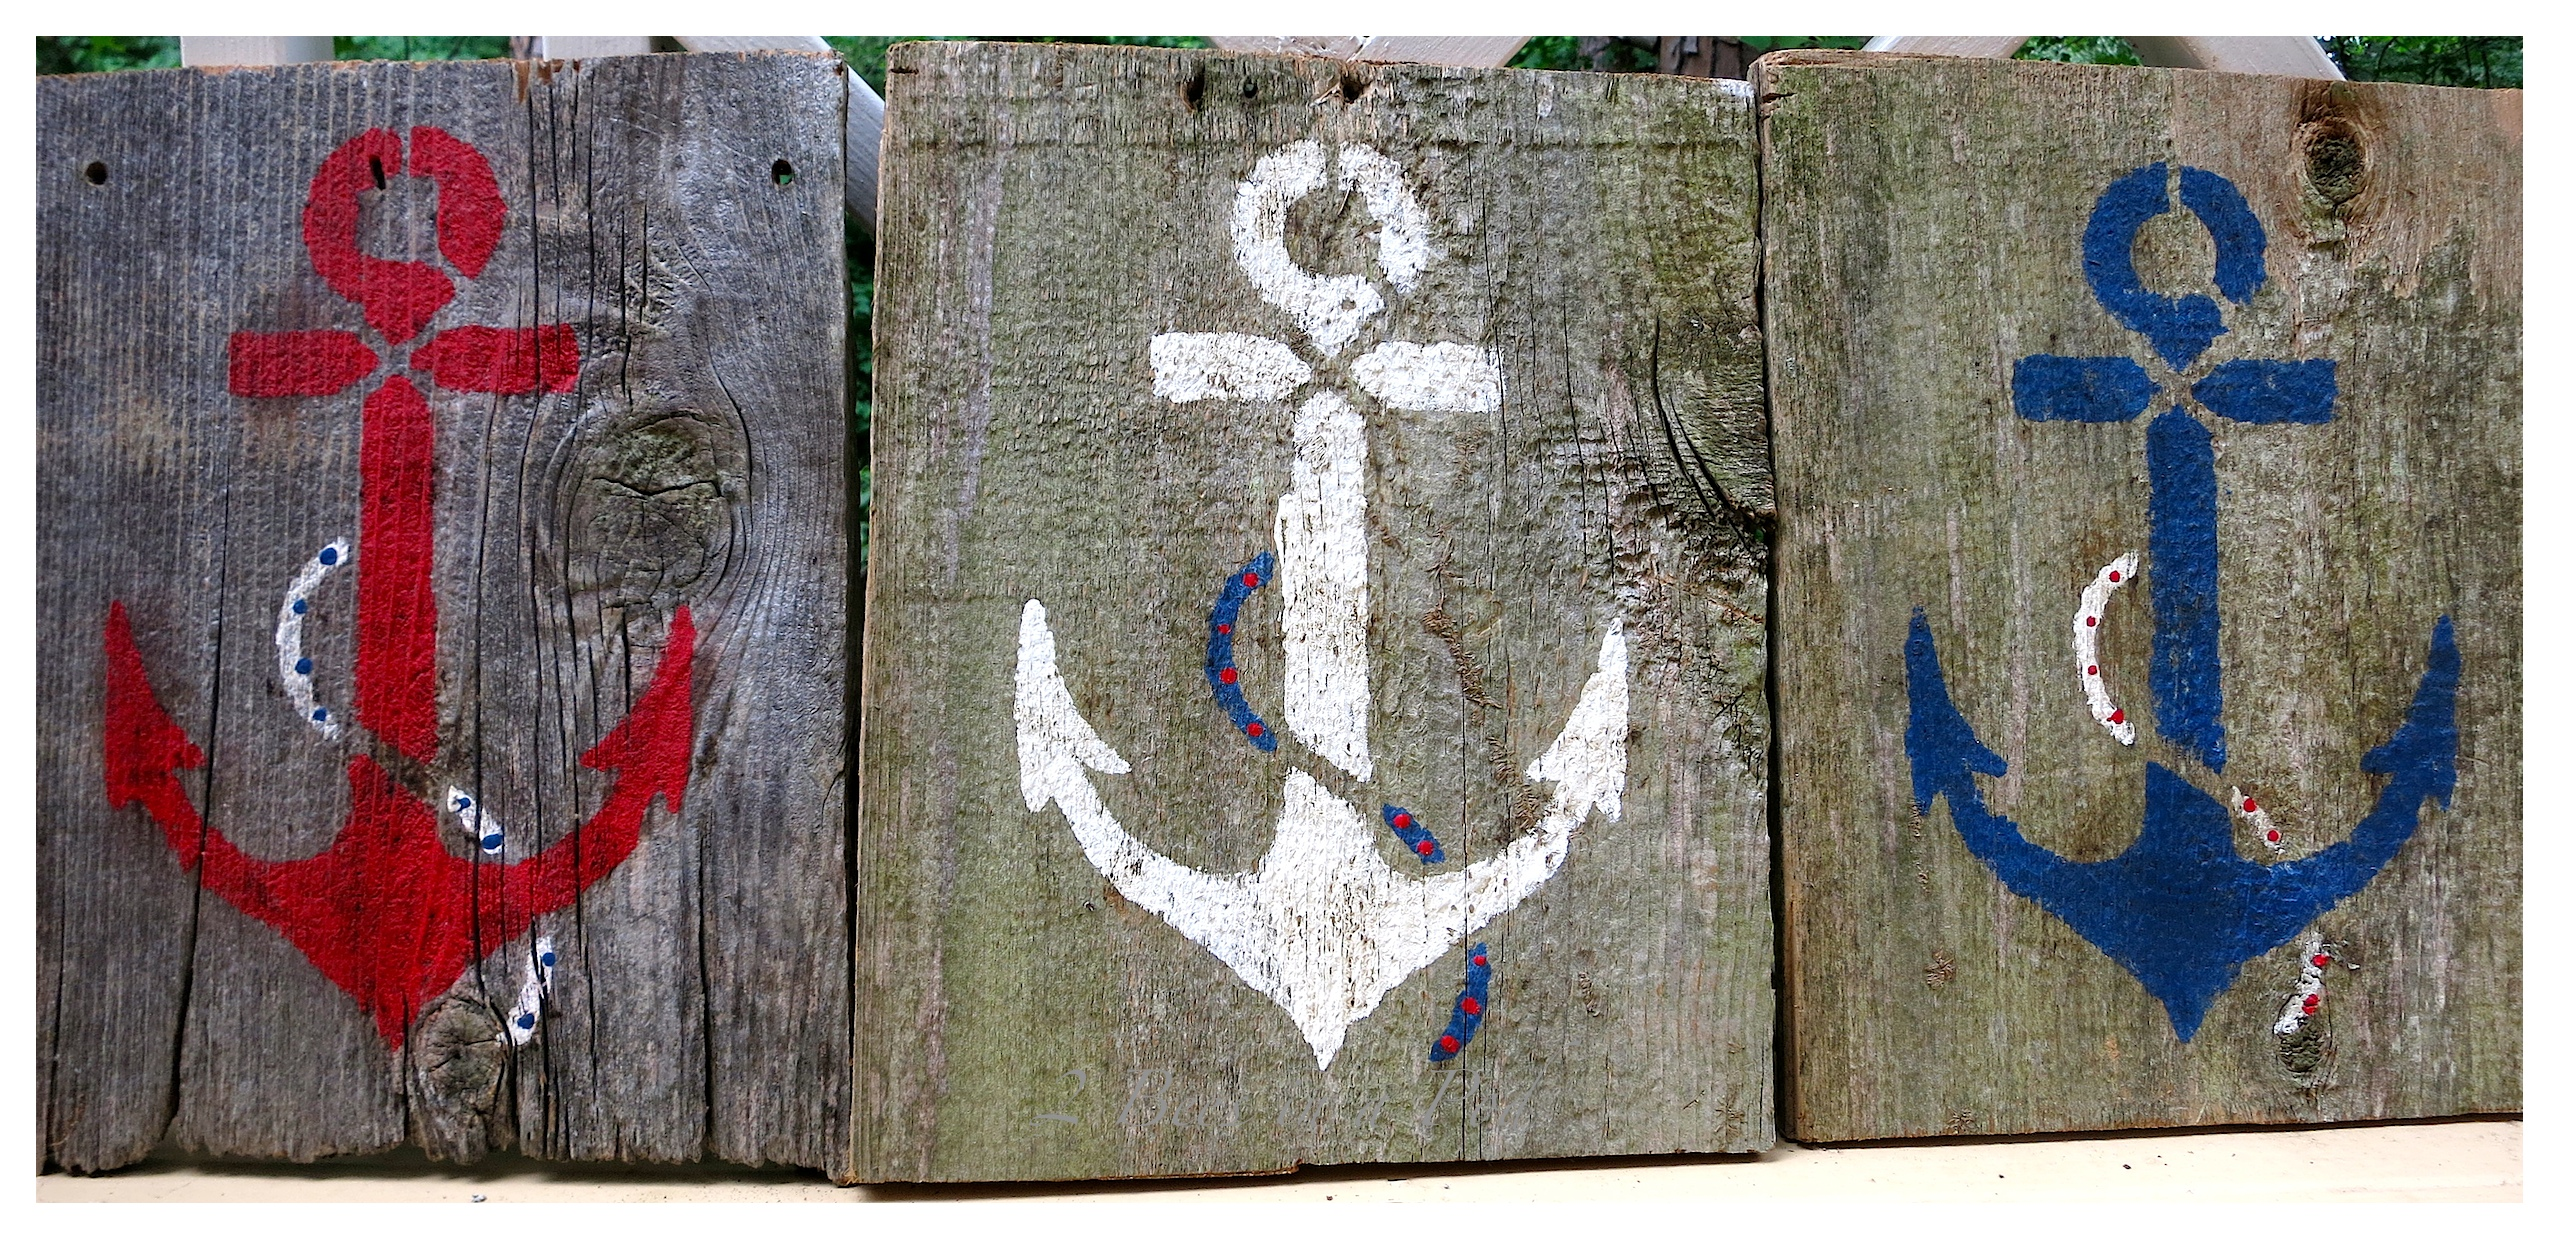 We repurposed old fencing from a friends yard. One of the projects that we did was create patriotic Americana nautical art. We stenciled red, white and blue anchors and then distressed and antiqued the wood.